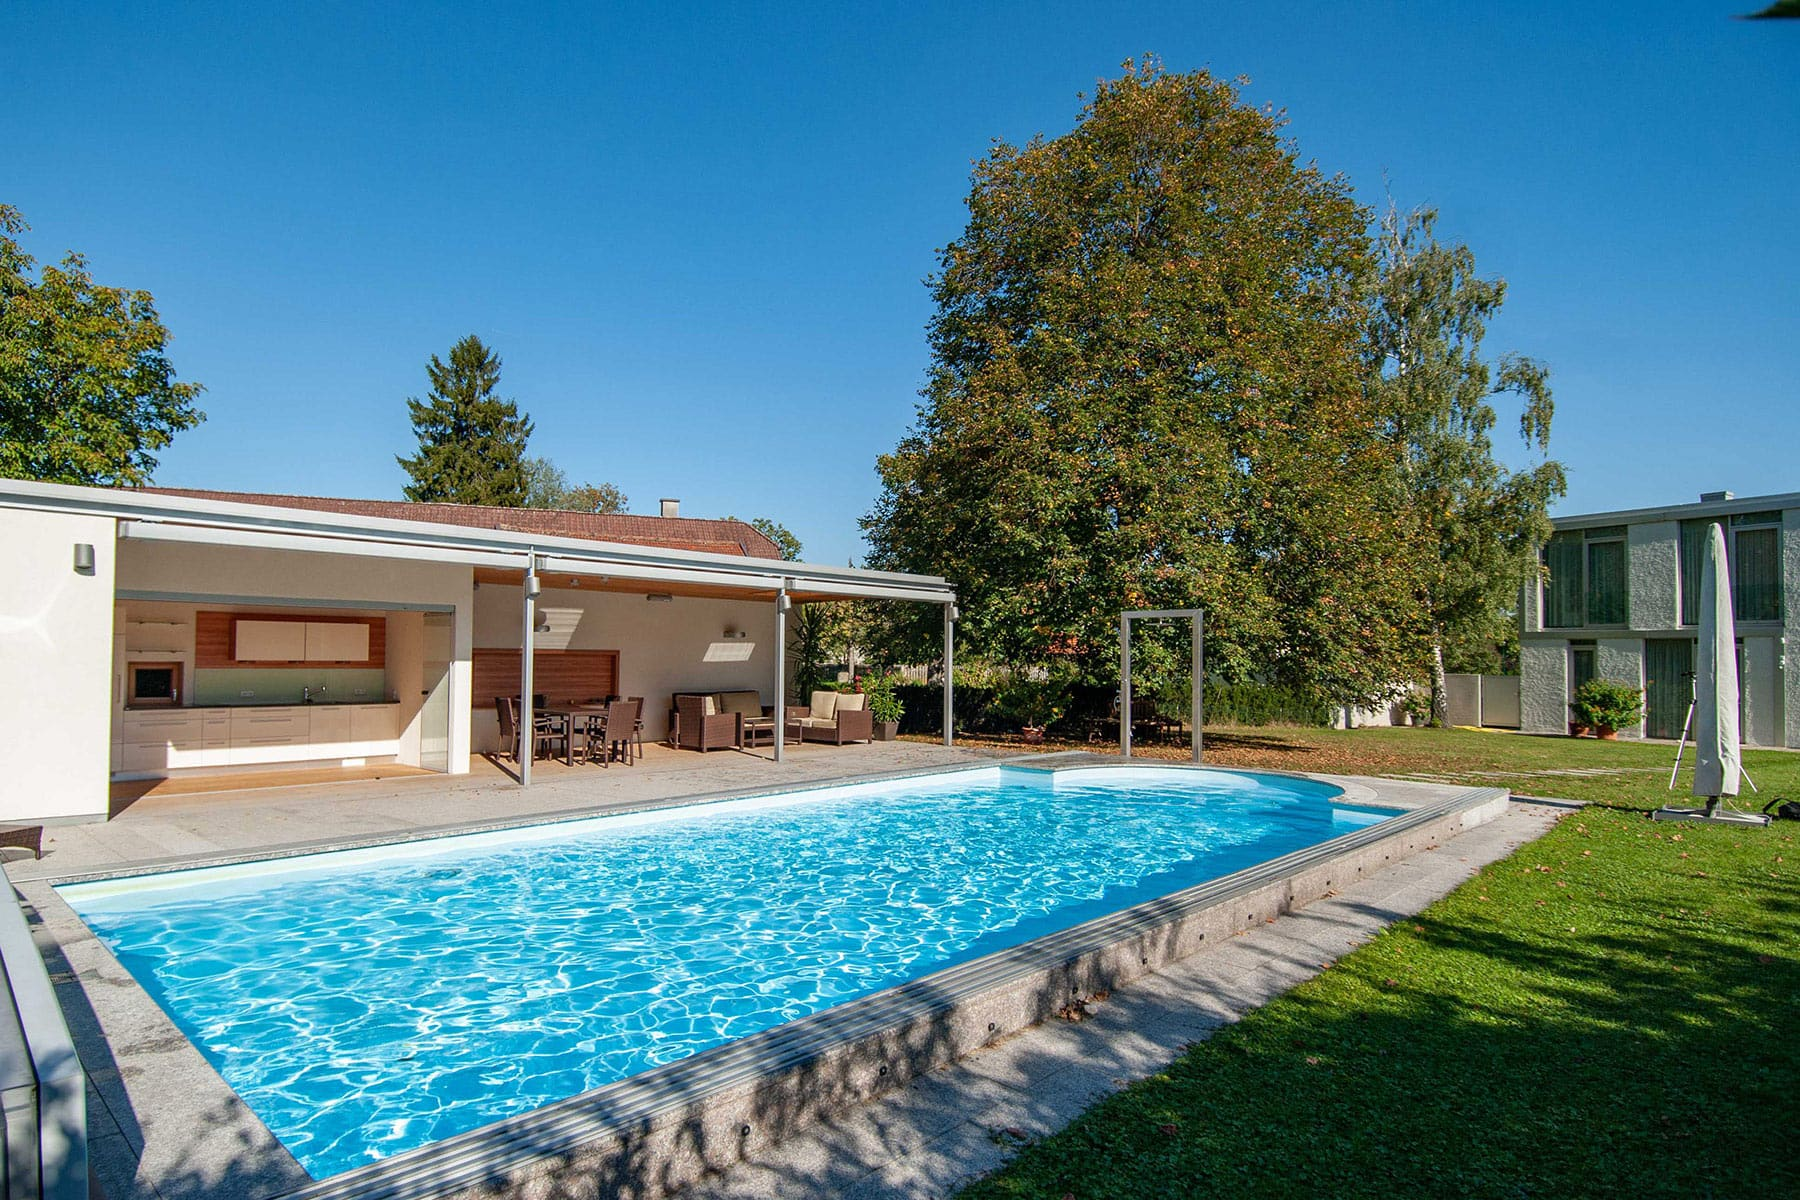 ARCHITEKT, Poolhaus, Architektenhaus, Gartenlaube, Chillen am Pool, Sommerlaune